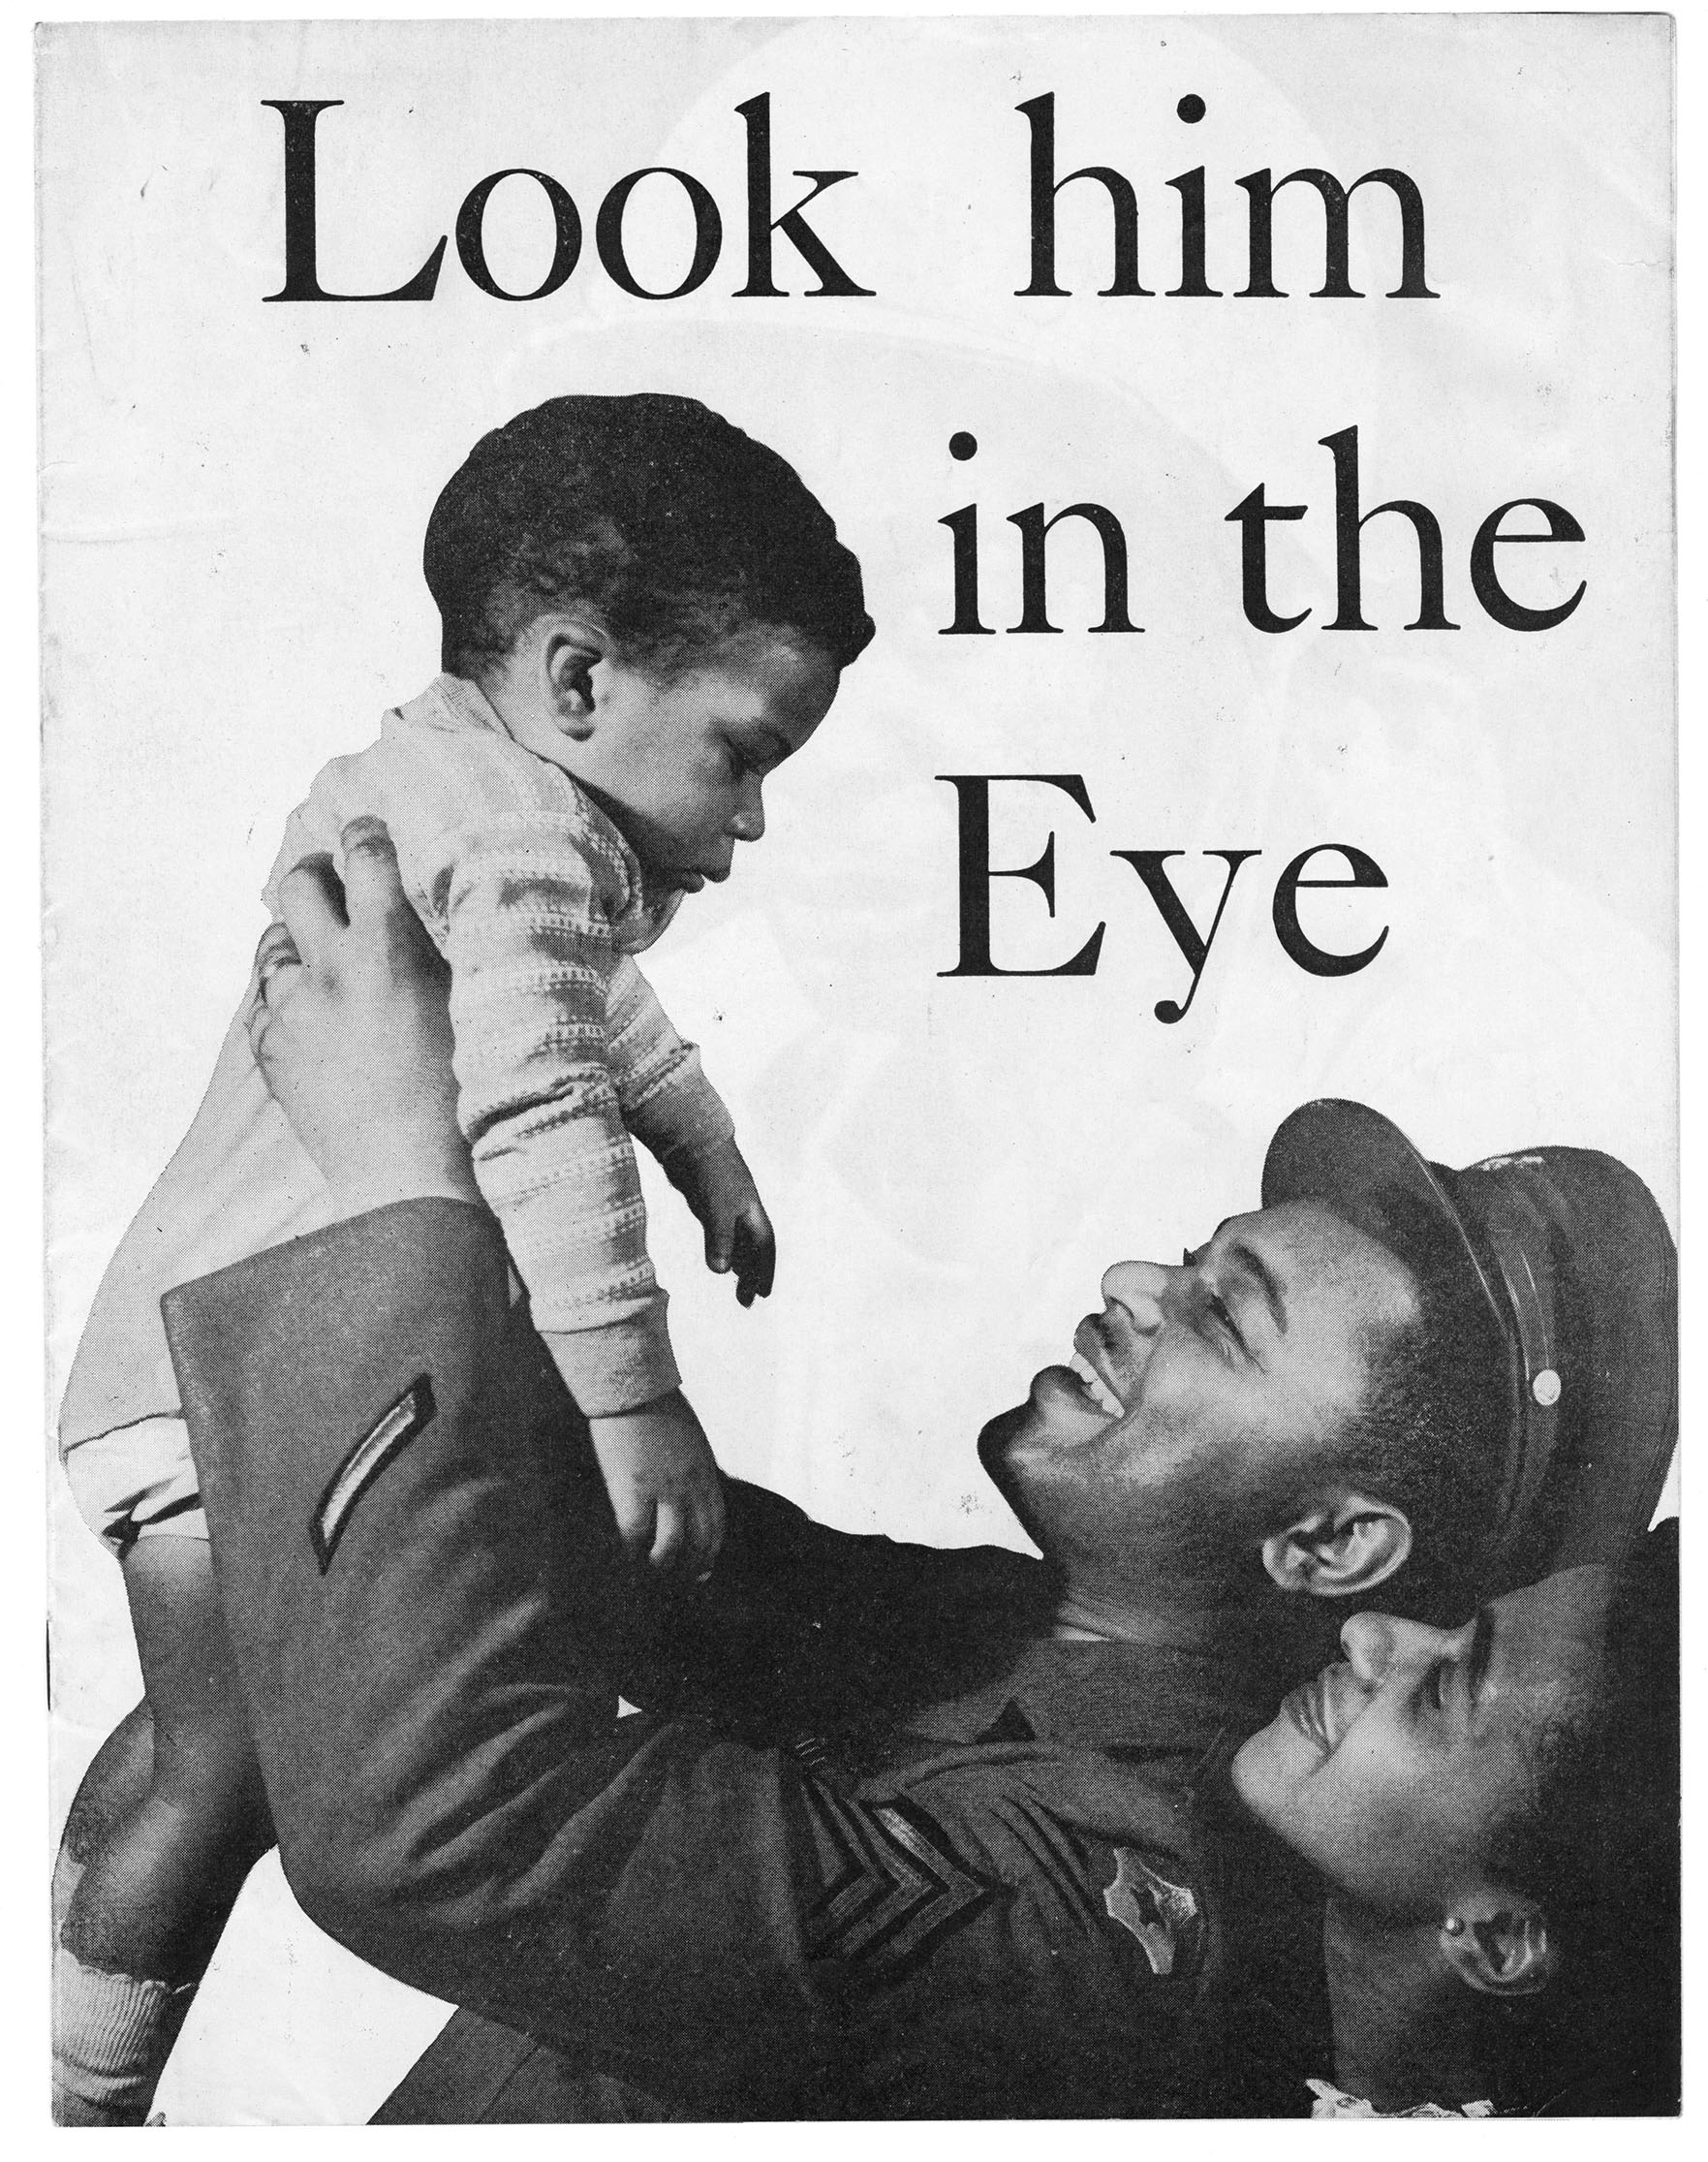 """Look Him in the Eye"", This booklet discusses Black veterans and those who served in the armed forces. It features various images of Black men in combat."